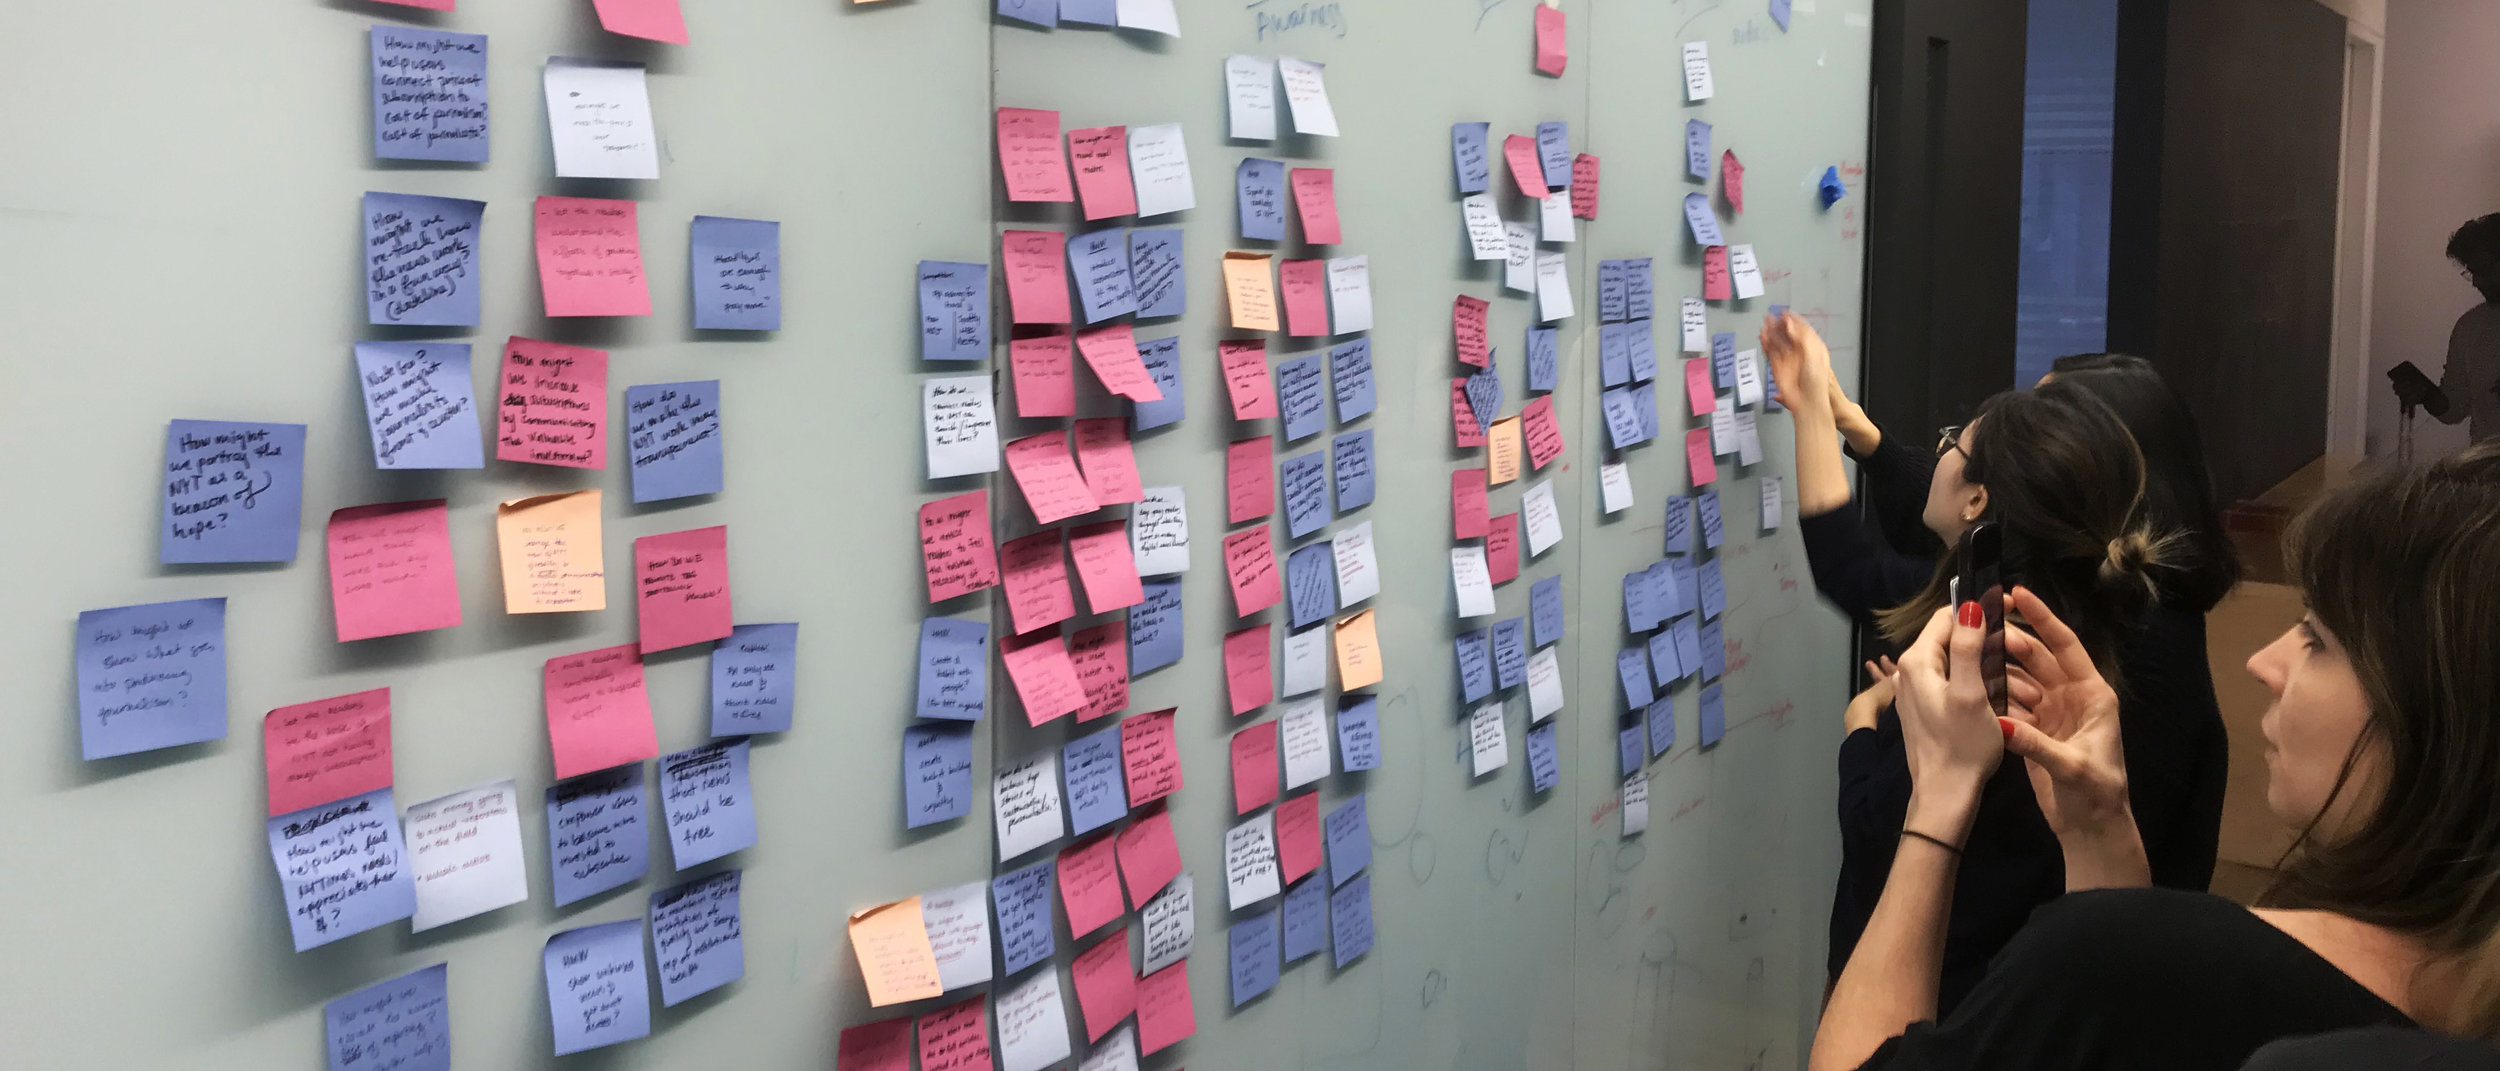 Brainstorming topics on opportunities for improvement